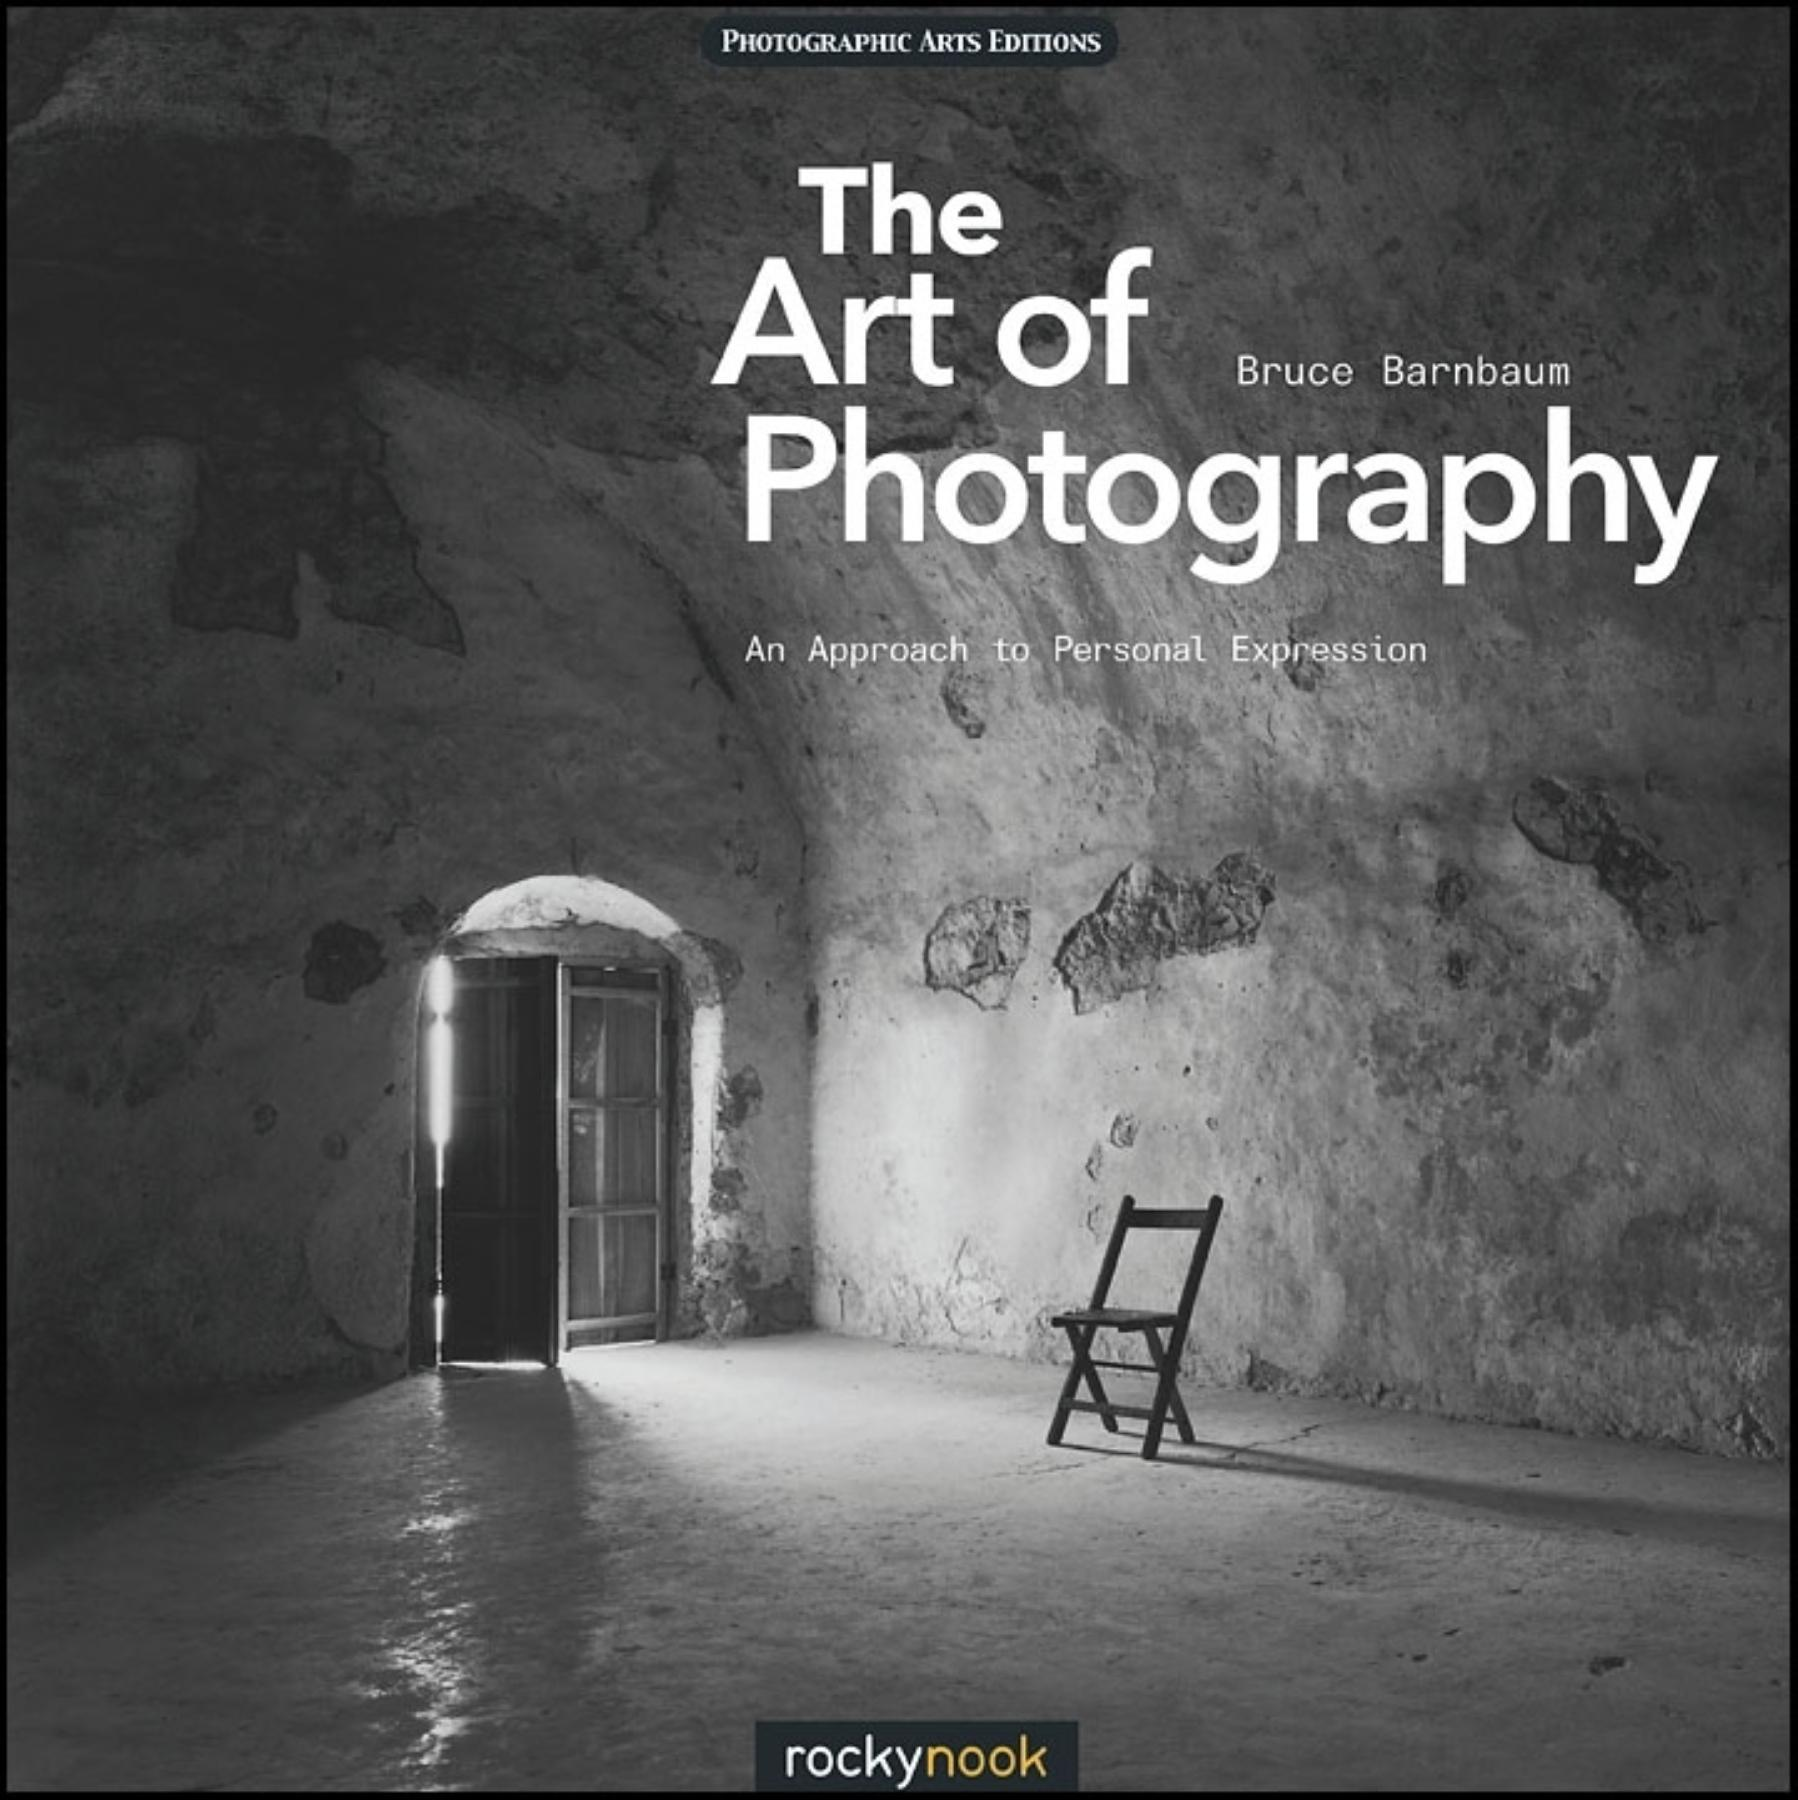 Book Cover Photography Examples ~ Topics and techniques product categories rockynook